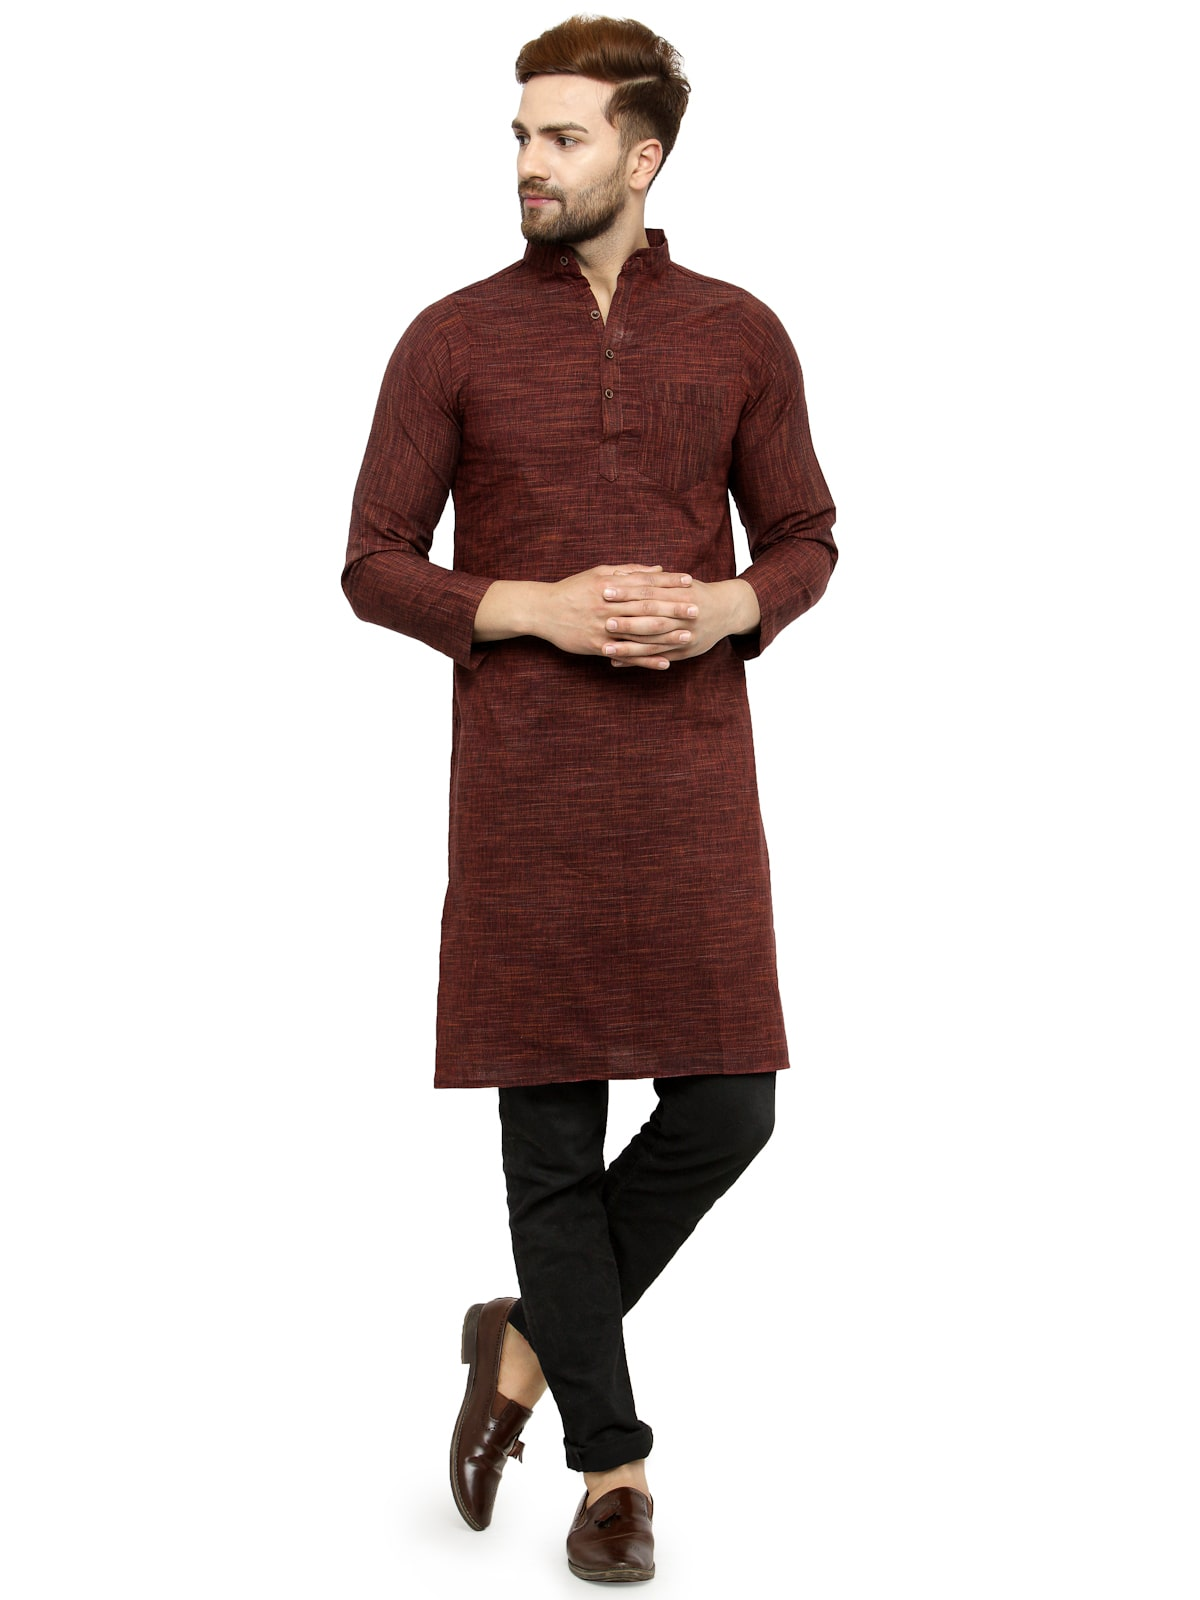 https://assetscdn1.paytm.com/images/catalog/product/A/AP/APPMAROON-COTTOED45714E40C91B7/0..jpg